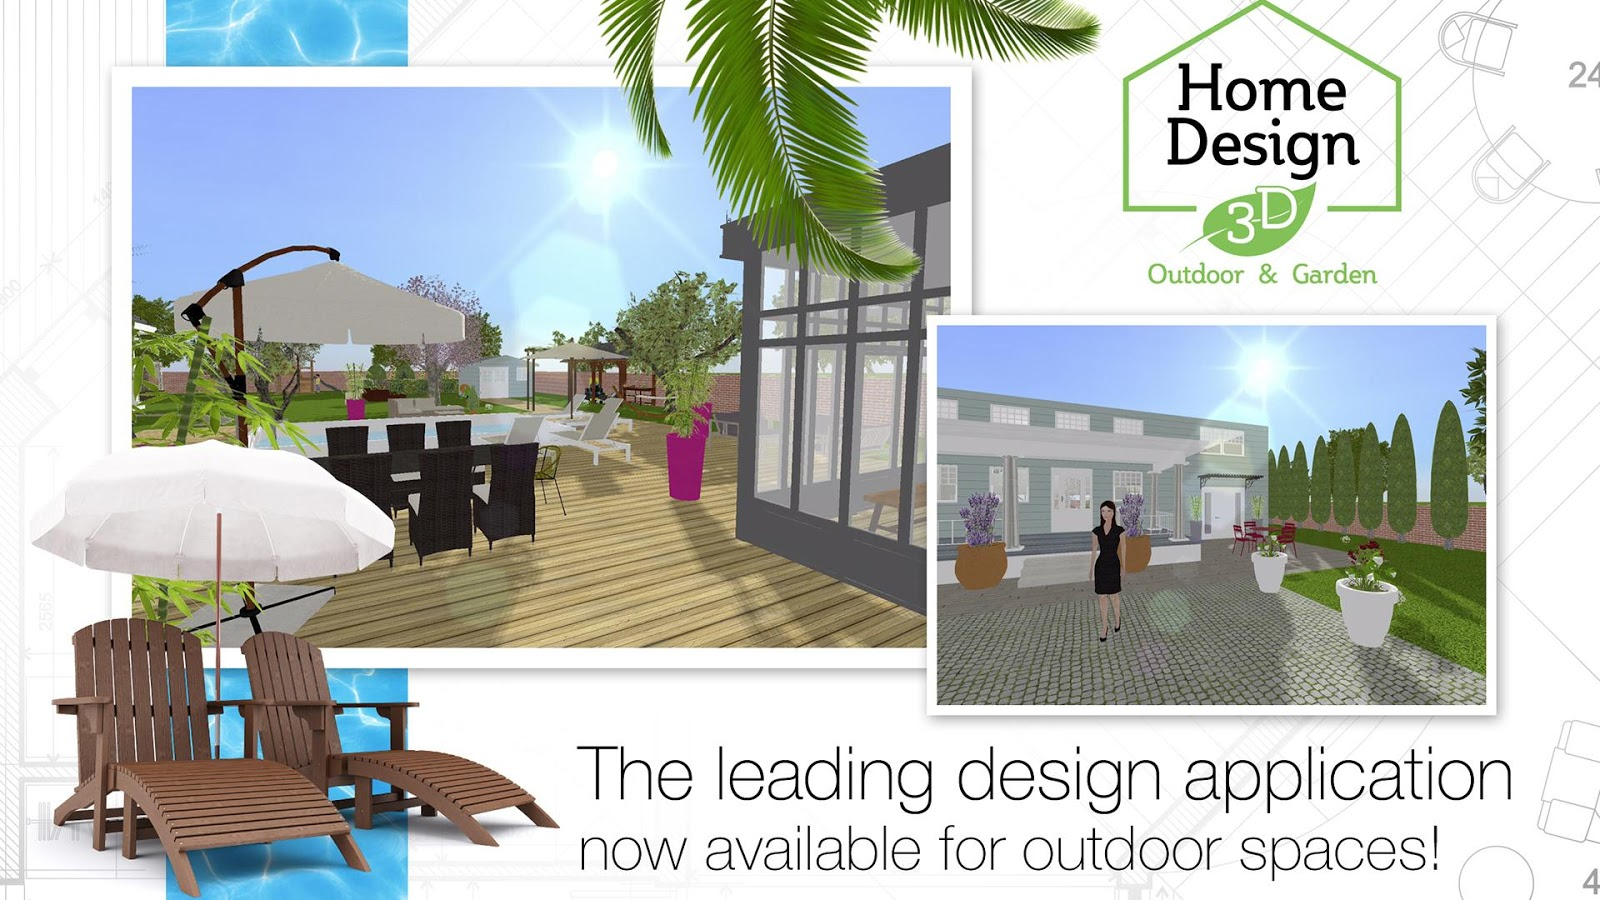 Home Design 3d Outdoor And Garden Full : Home design d outdoor garden android apps on google play